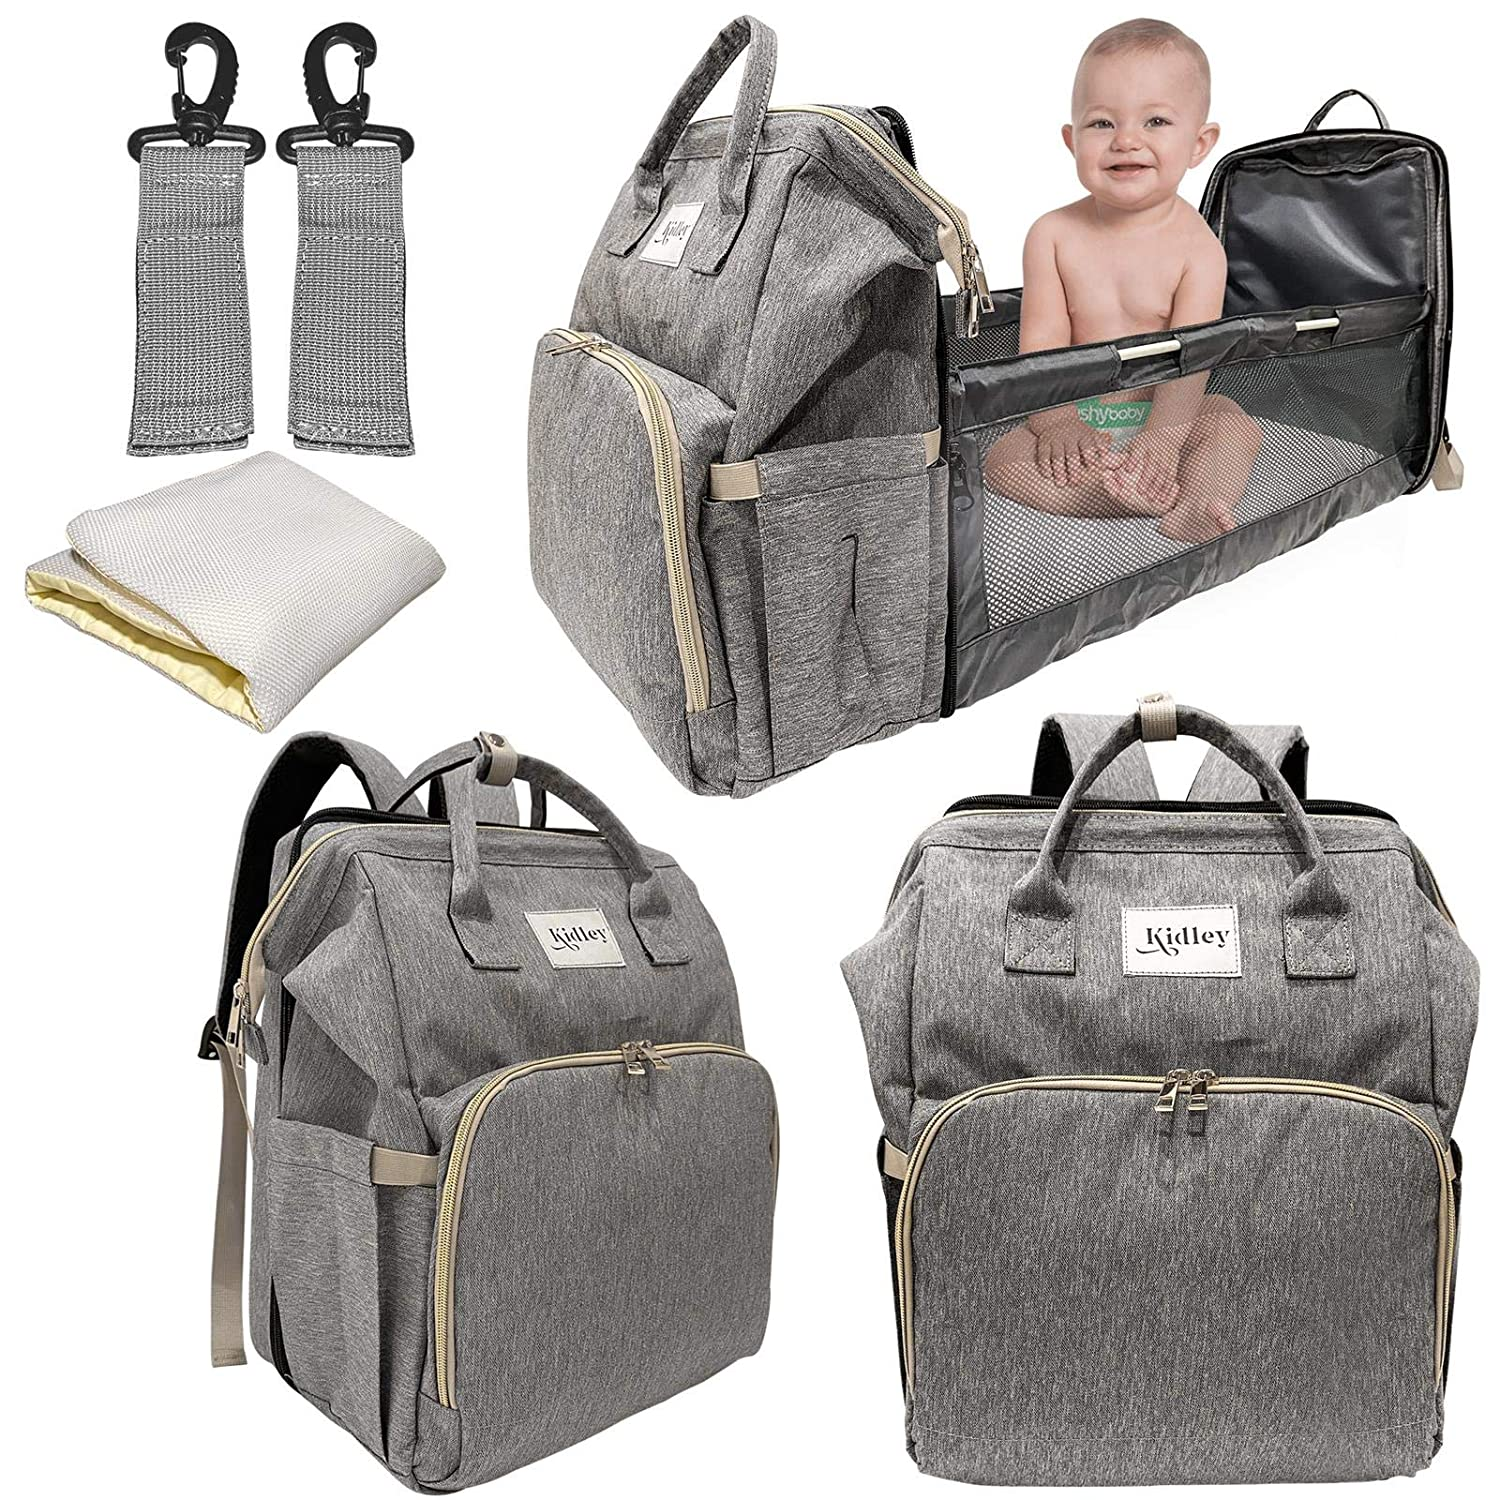 Kidley Multifunctional Diaper Bag with Changing Station   Diaper Bag with Bassinet   Travel Bag Backpack Includes Travel Crib   Stroller Strap   Portable Bassinet with Bed Mat Pad (Grey)